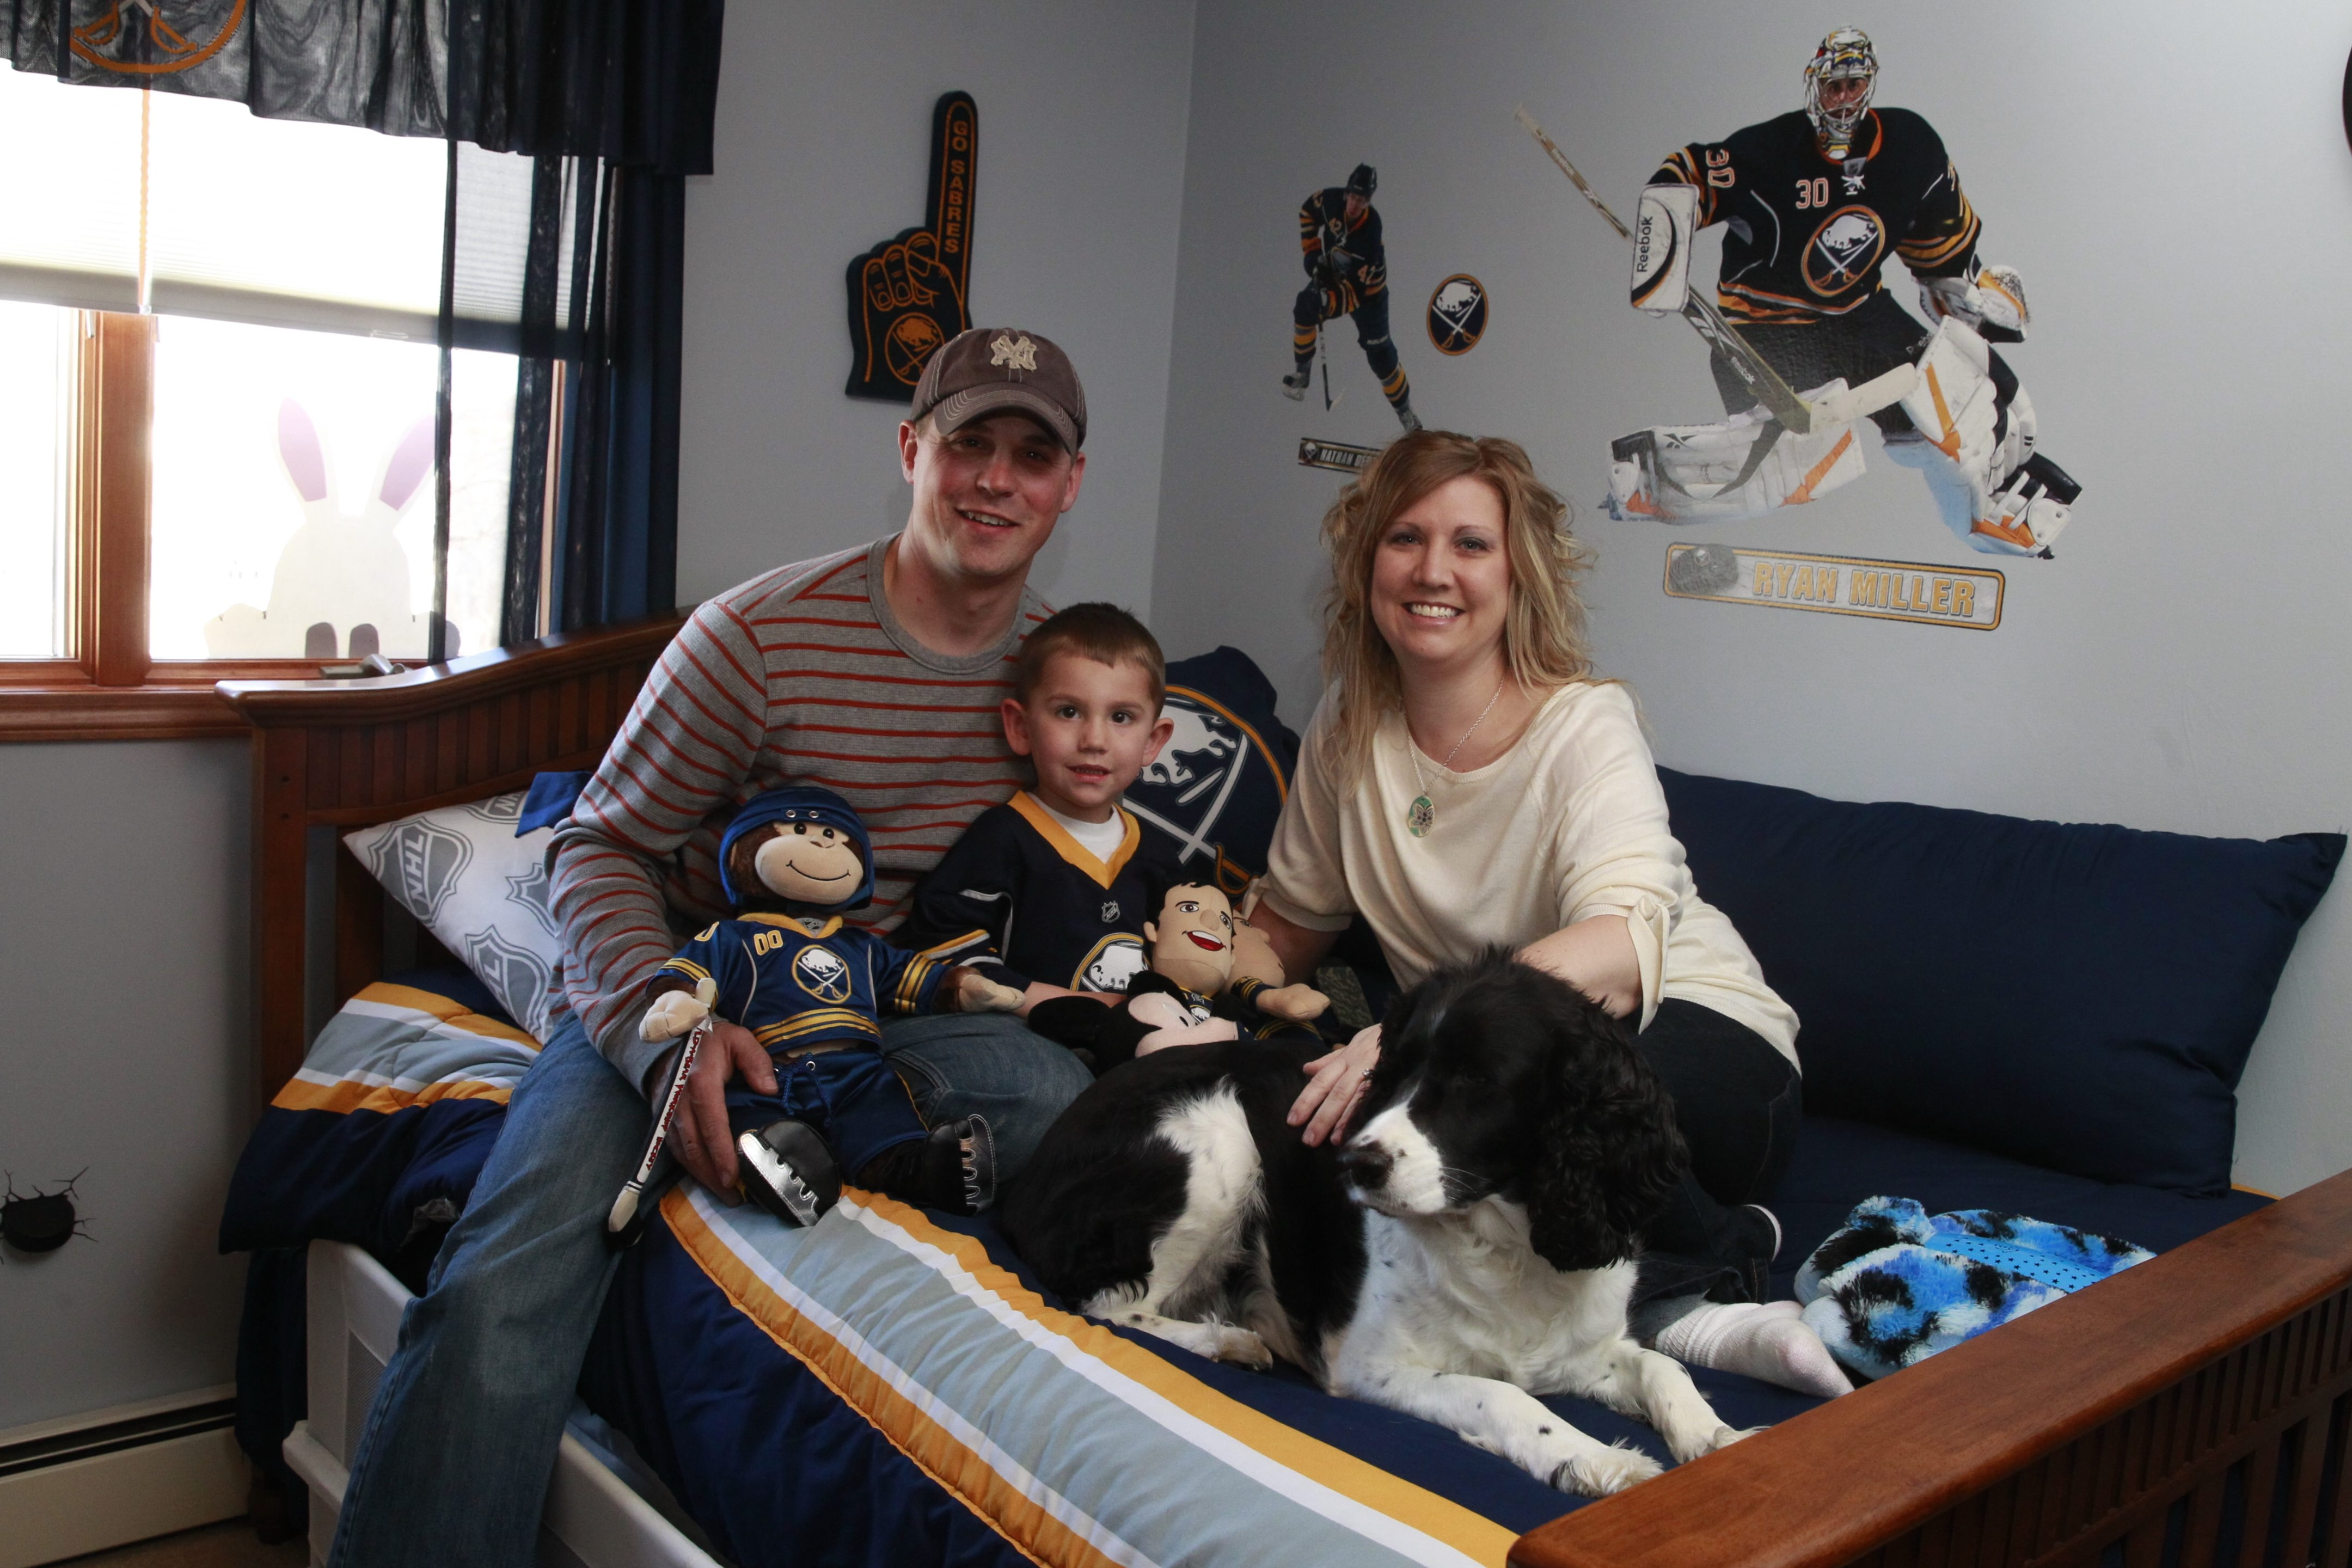 Scott and Kelly Glinski sit with their son, Ryan, 3. Ryan was born without the cells in his large intestine that allow food to move through the digestive tract. His disease is often fatal.